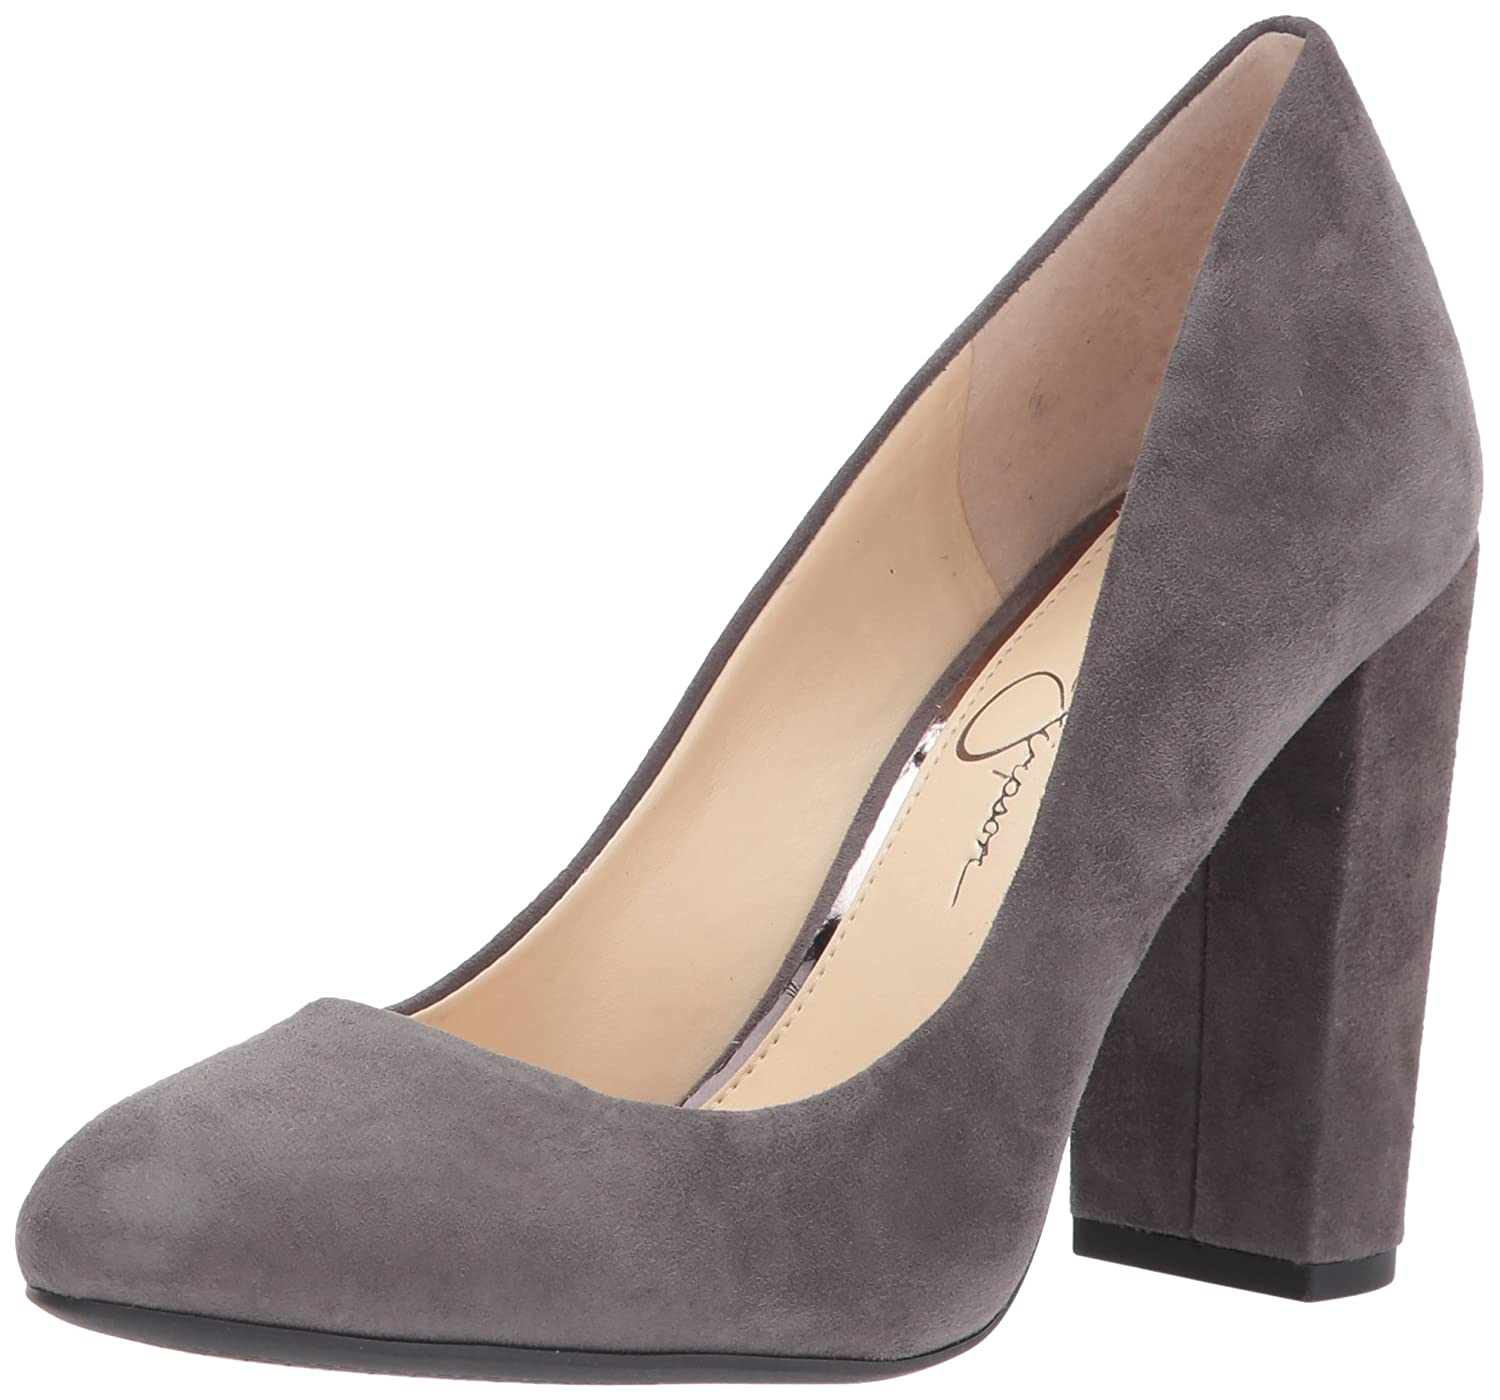 Jessica Simpson Women's Belemo Pump B0728JP8VM 7 M US|Really Grey